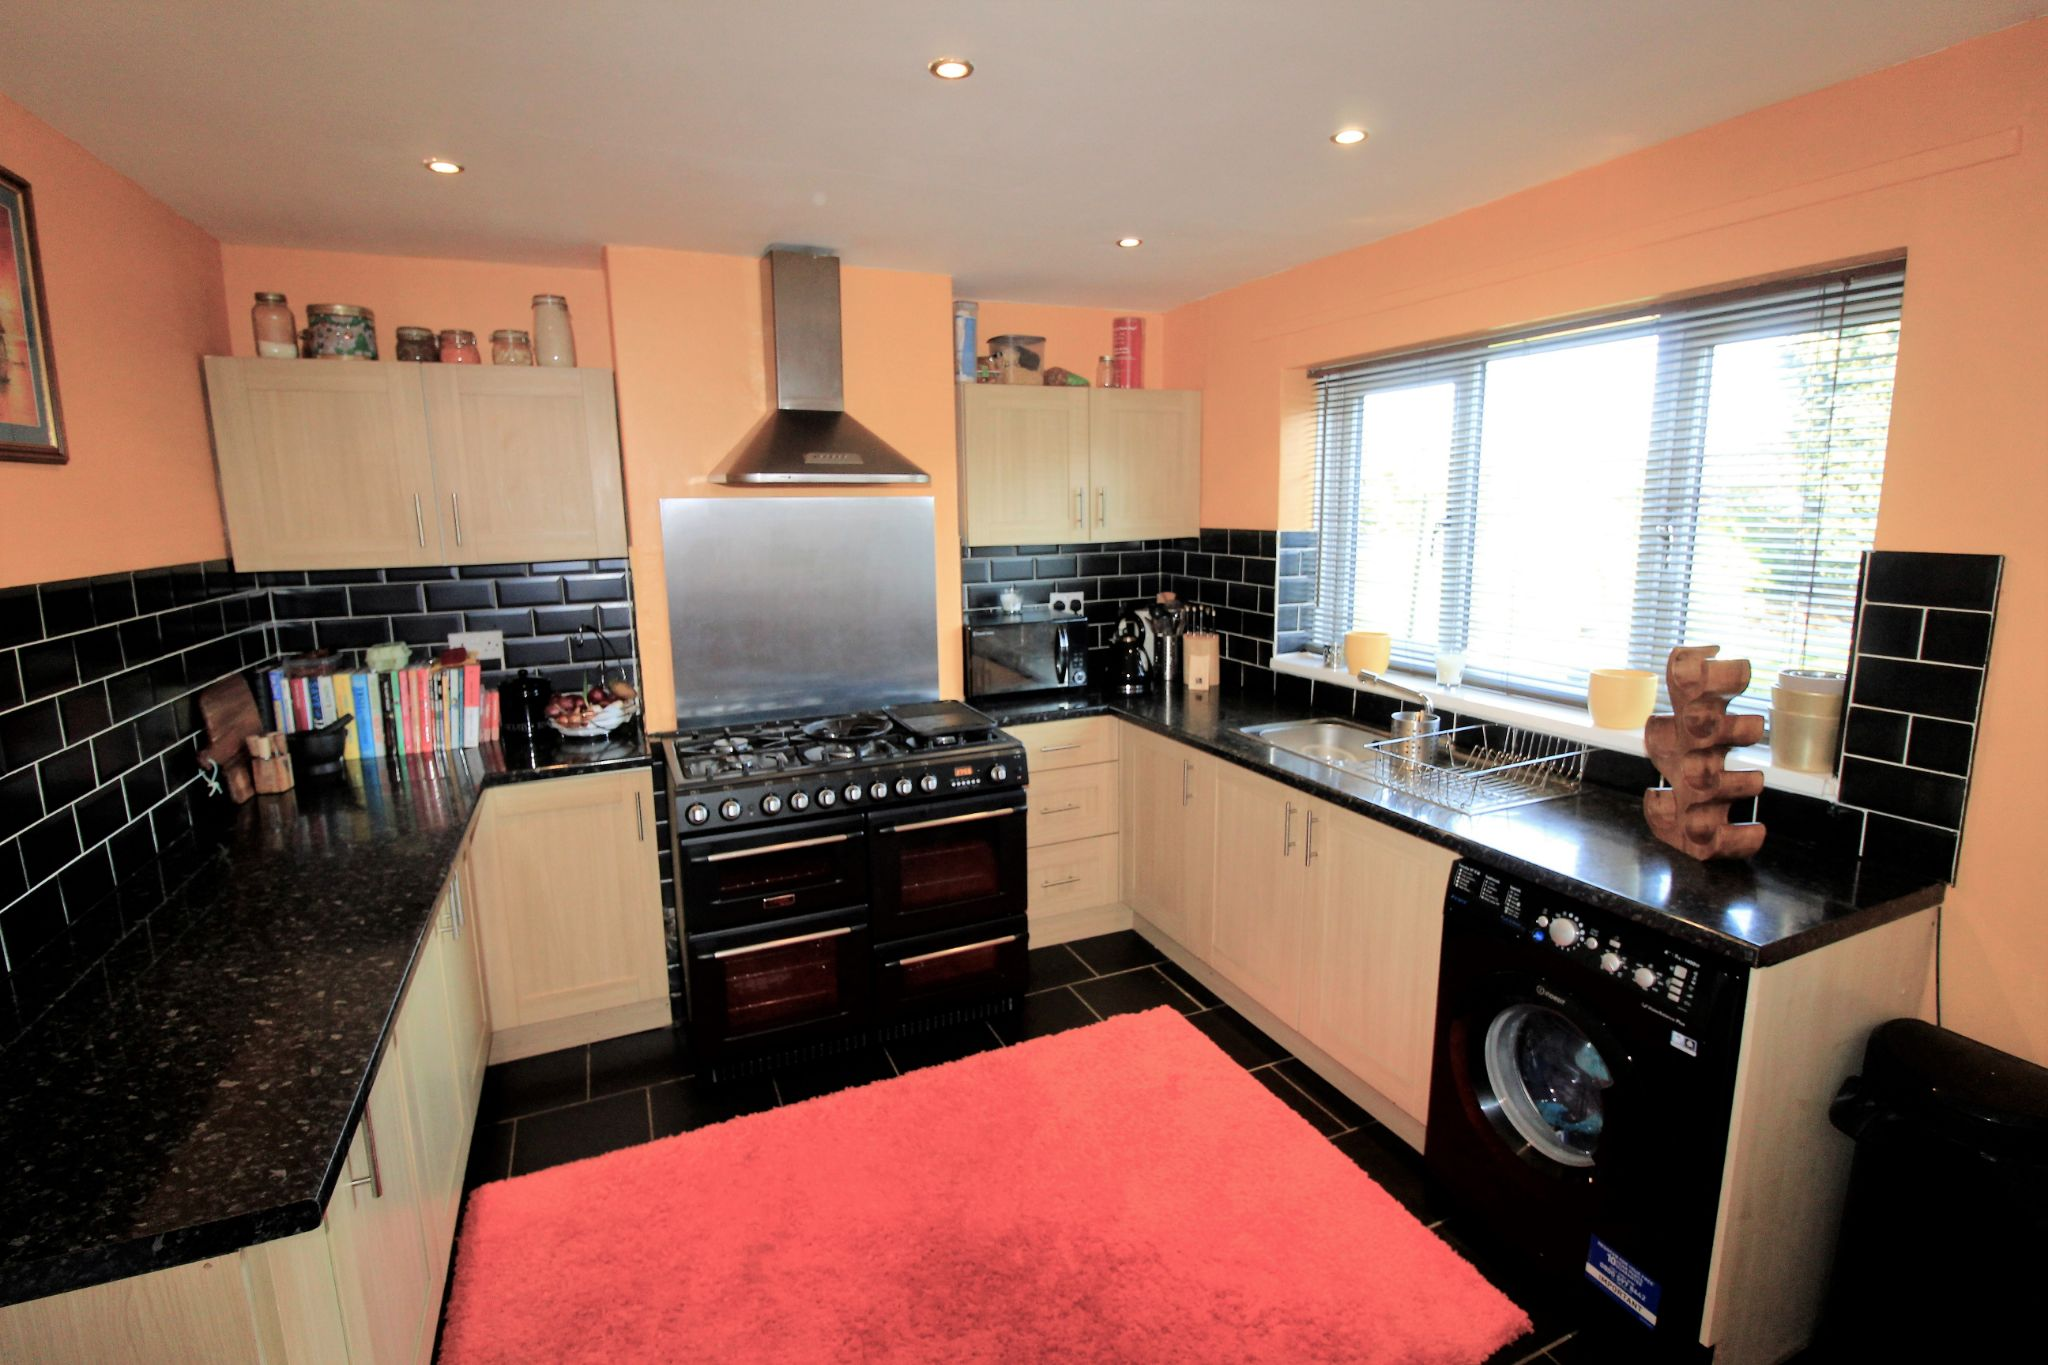 3 bedroom semi-detached house SSTC in Brighouse - Kitchen